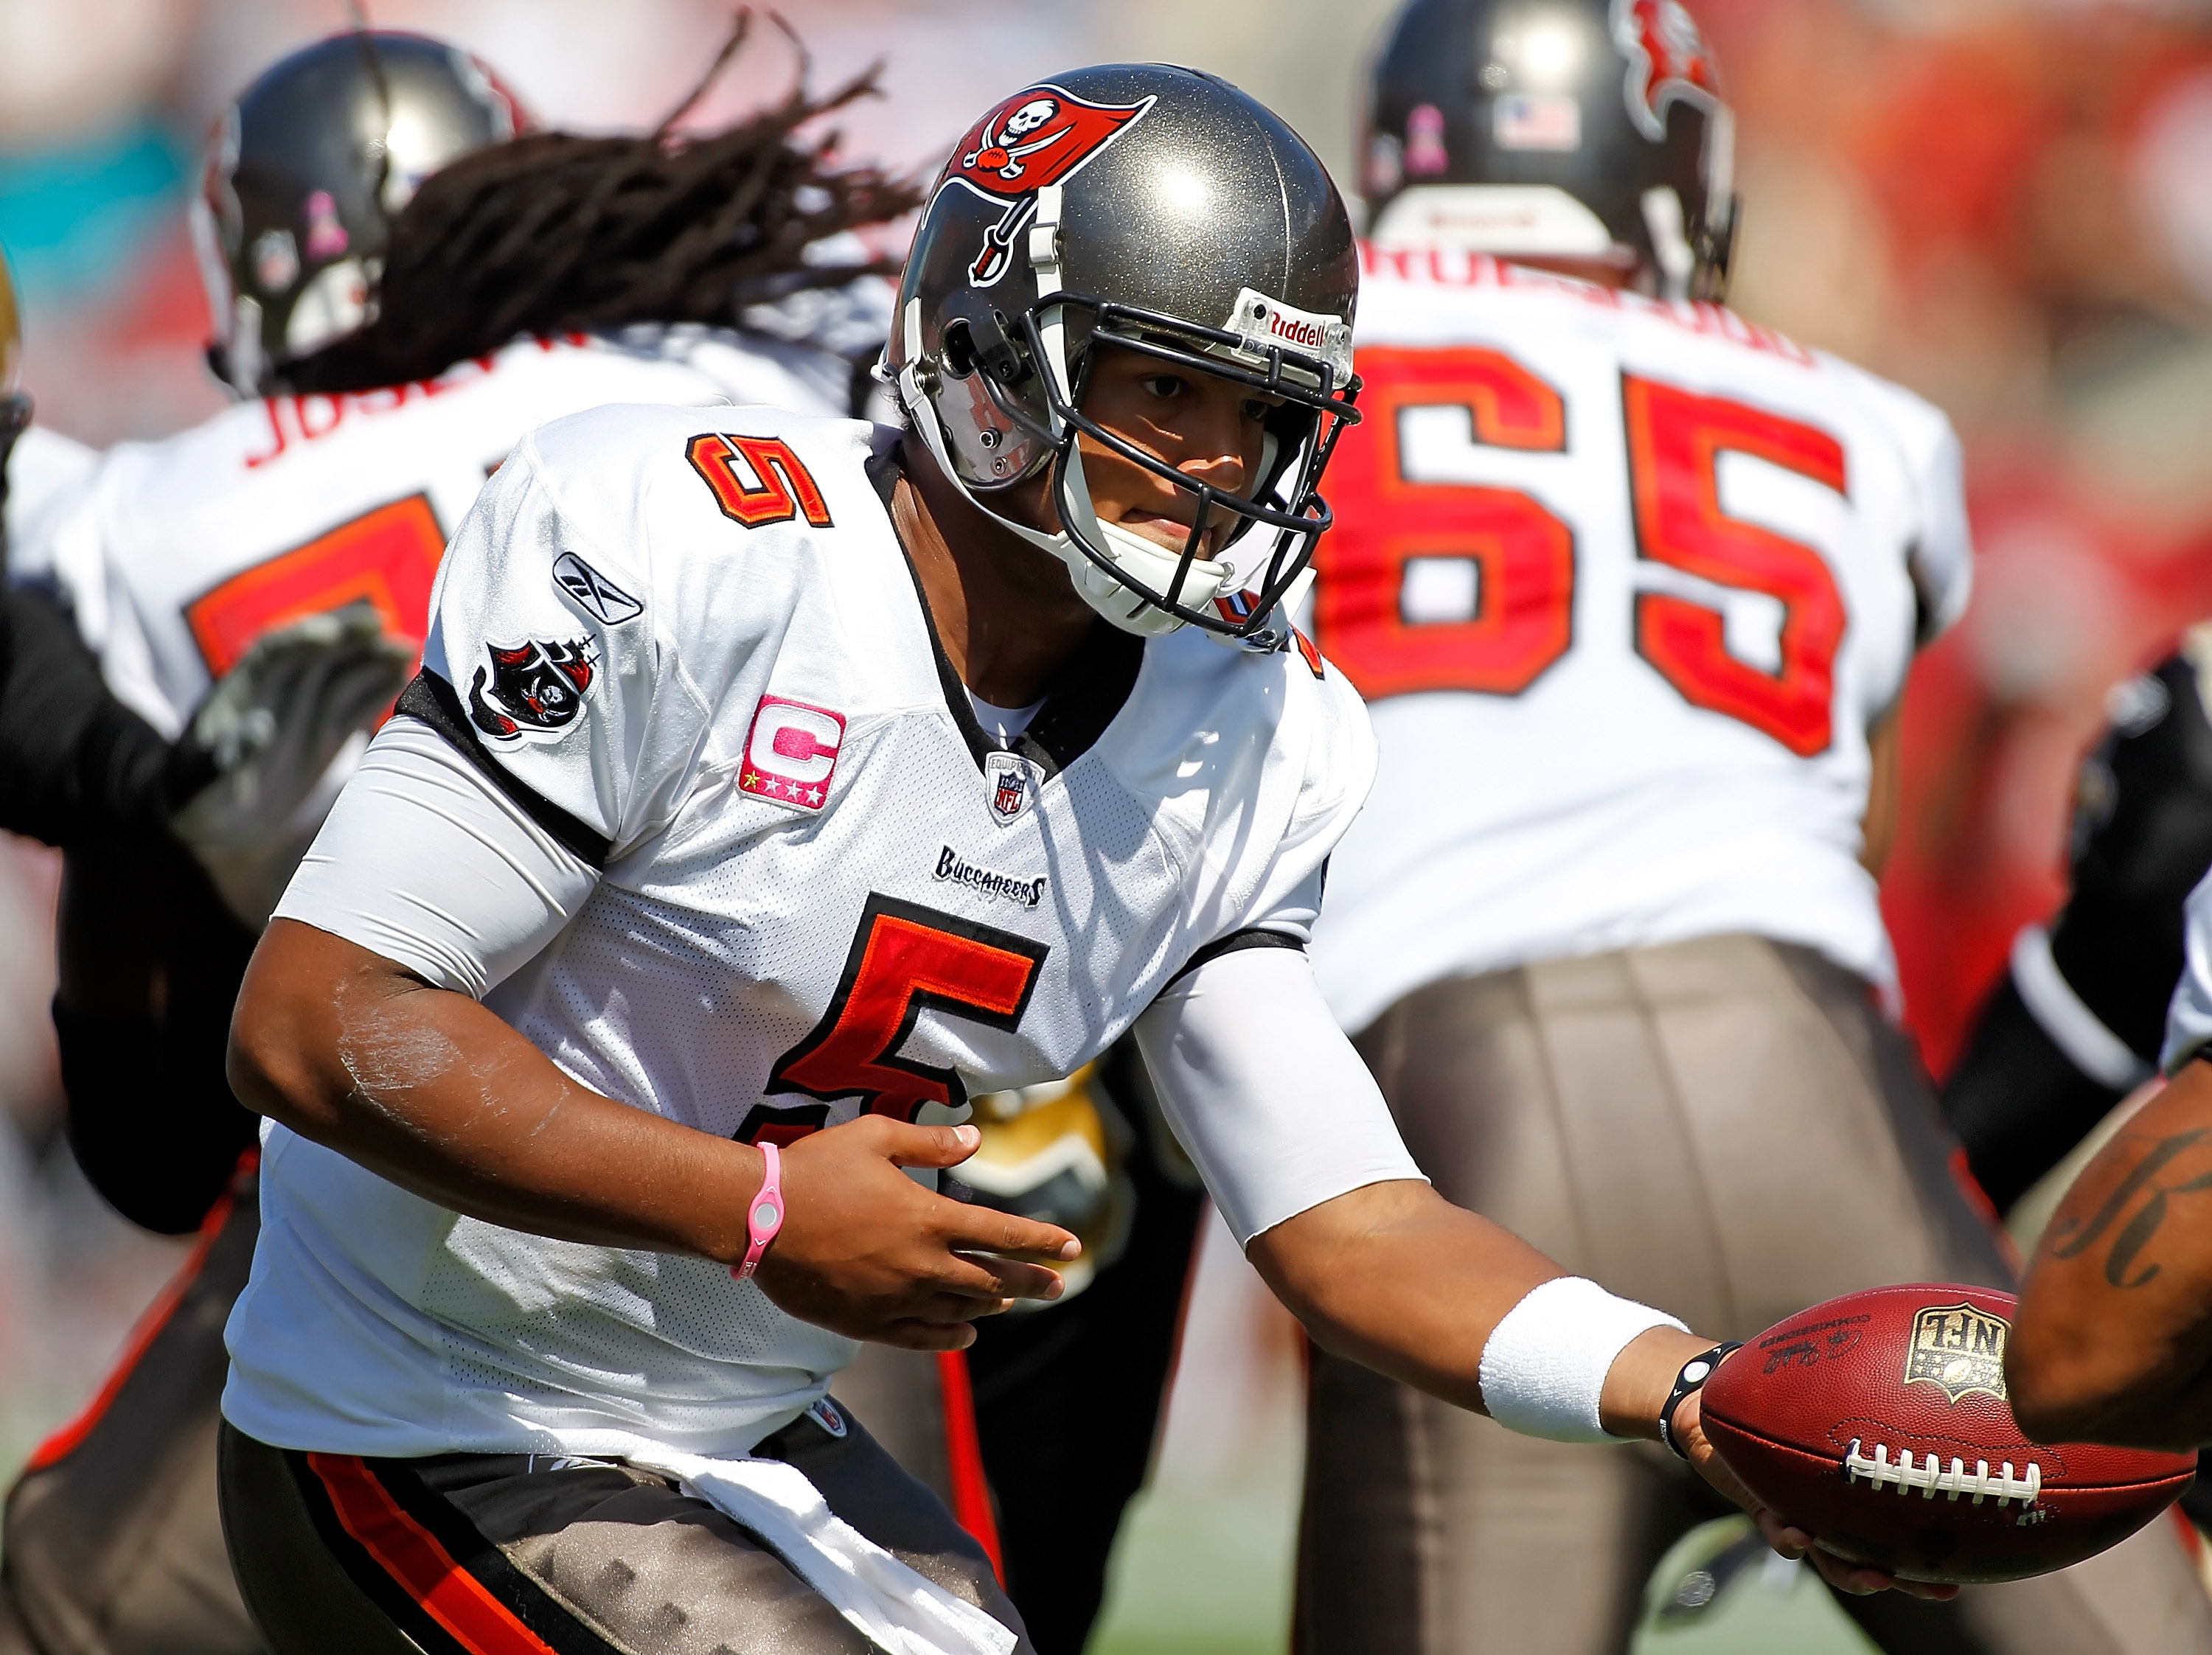 TAMPA, FL - OCTOBER 17:  Quarterback Josh Freeman #5 of the Tampa Bay Buccaneers hands the ball off against the New Orleans Saints during the game at Raymond James Stadium on October 17, 2010 in Tampa, Florida.  (Photo by J. Meric/Getty Images)